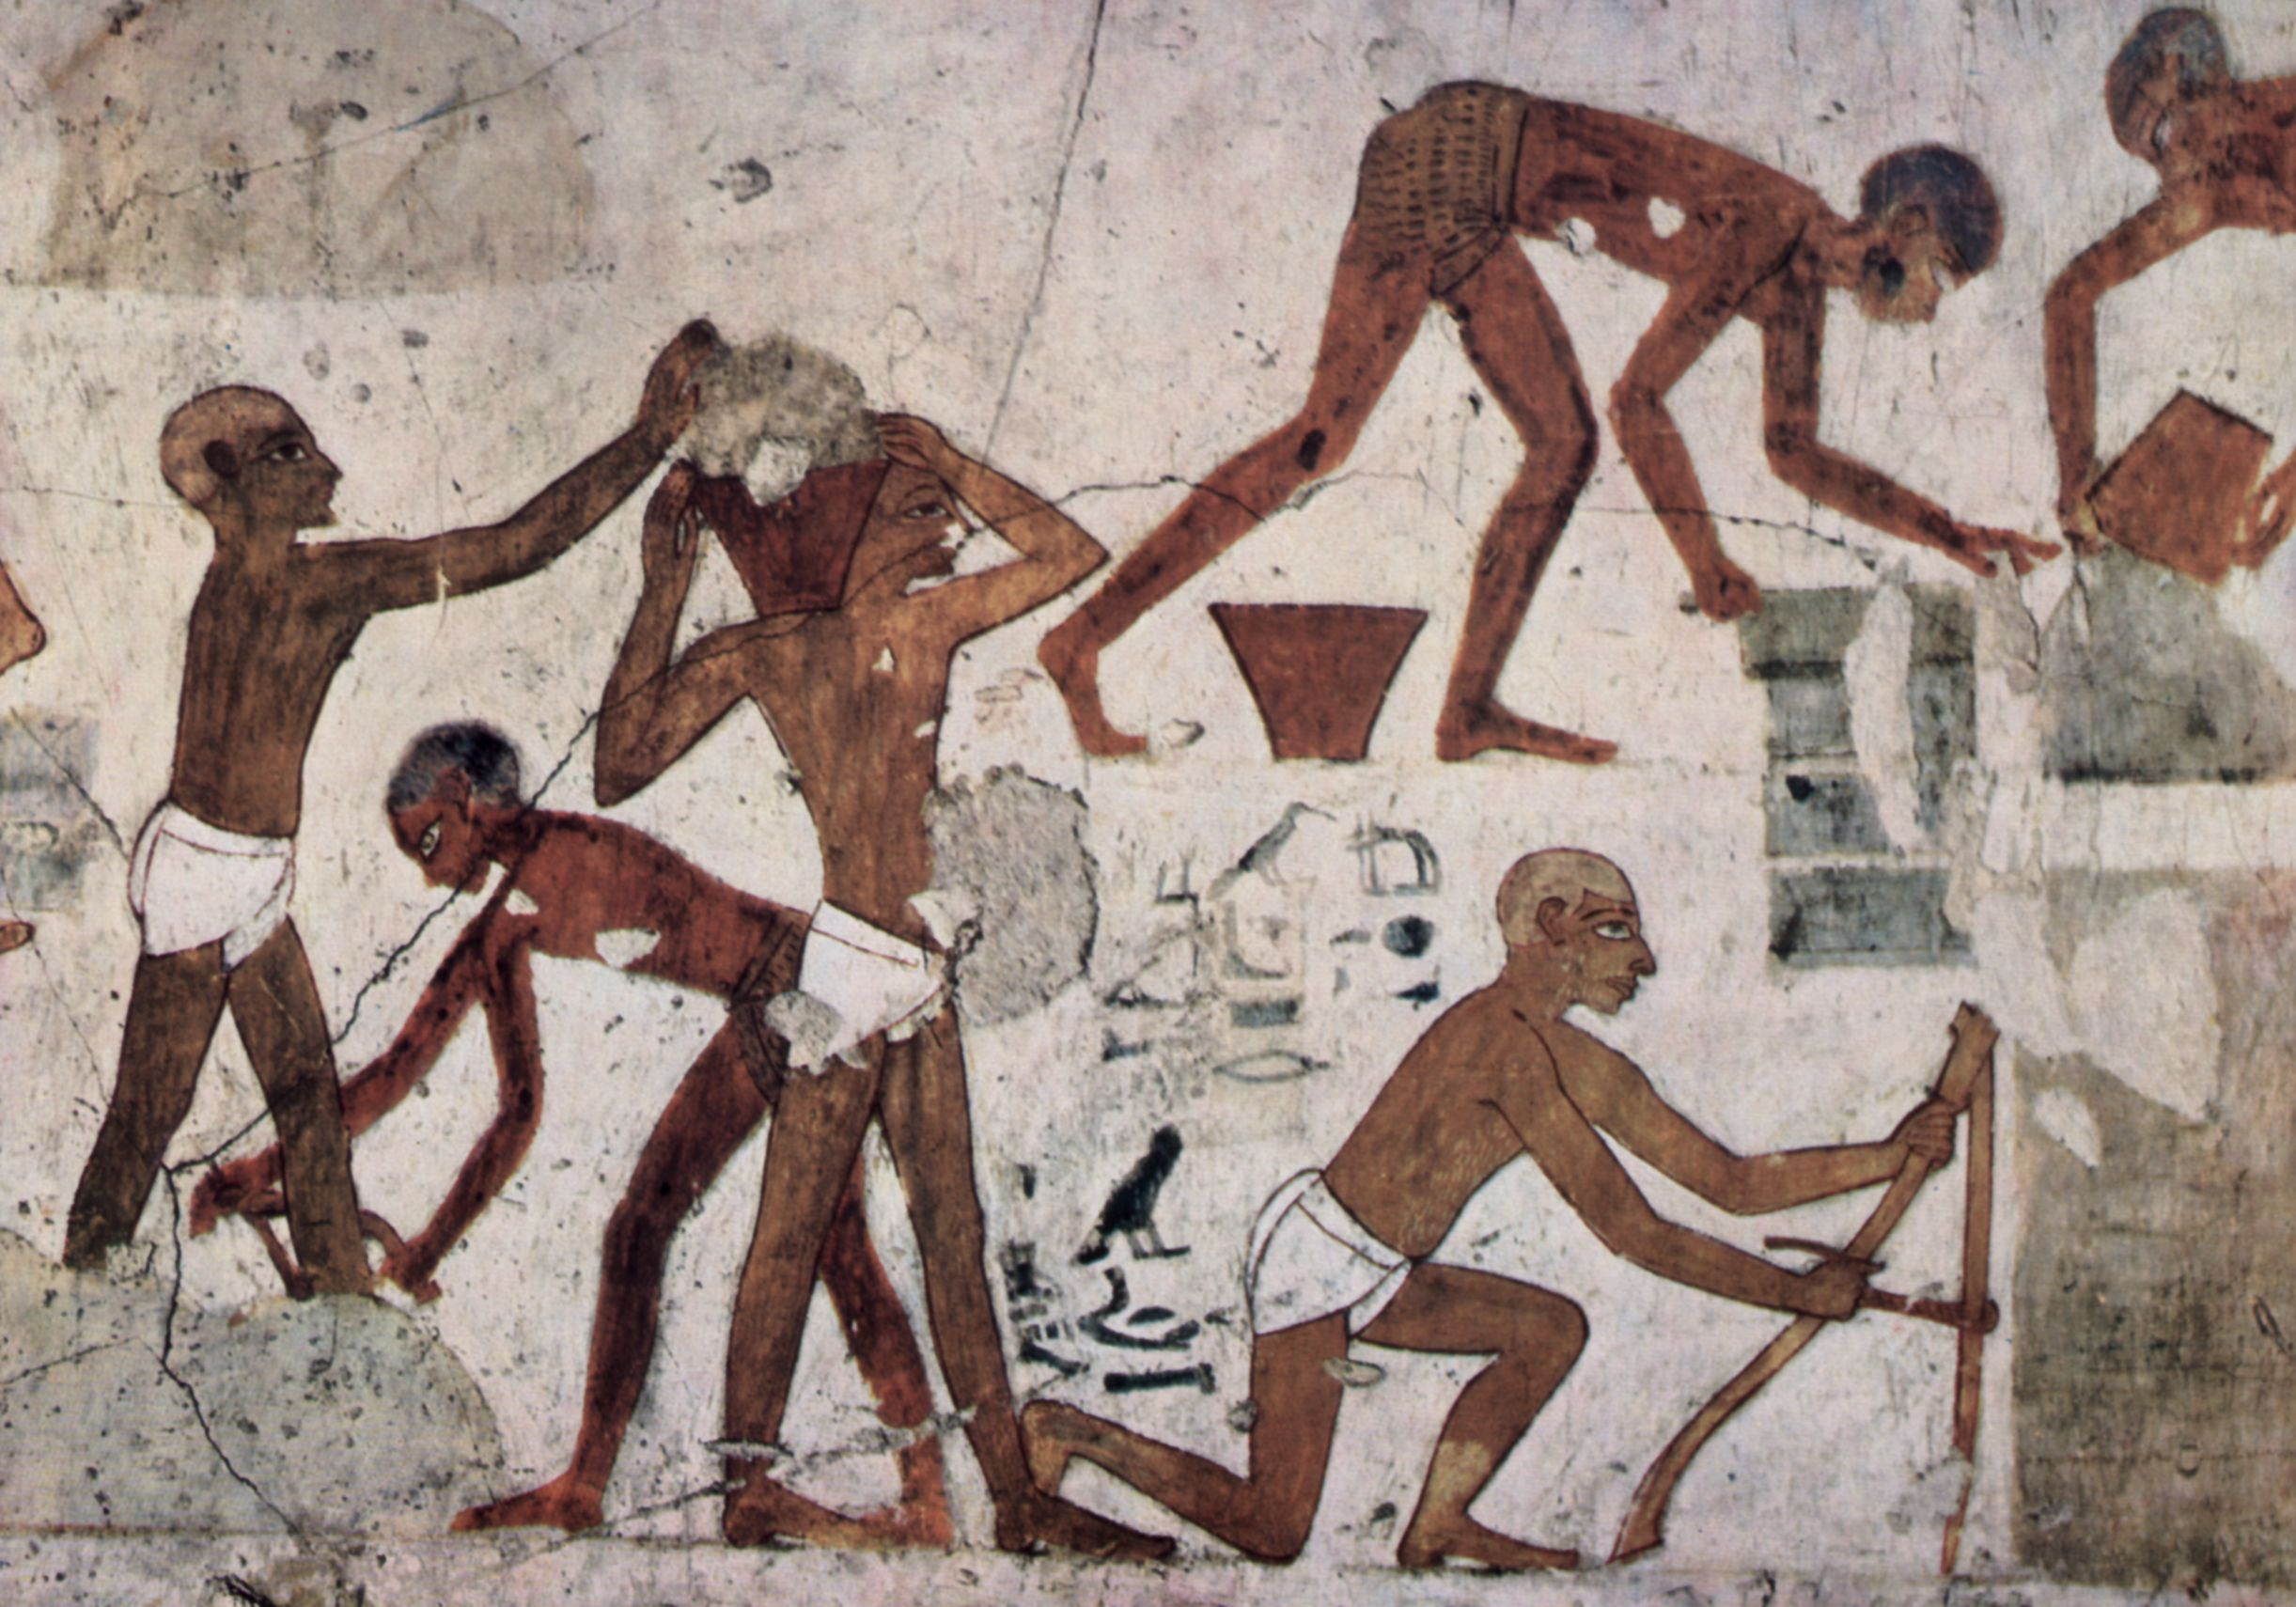 The monuments of antiquity were built from a combination of skilled and slave labor. This painting shows skilled Egyptian craftsmen quarrying, shaping, and transporting stones as well as making mud bricks. These ancient tradesmen were some of the first 'architects'.